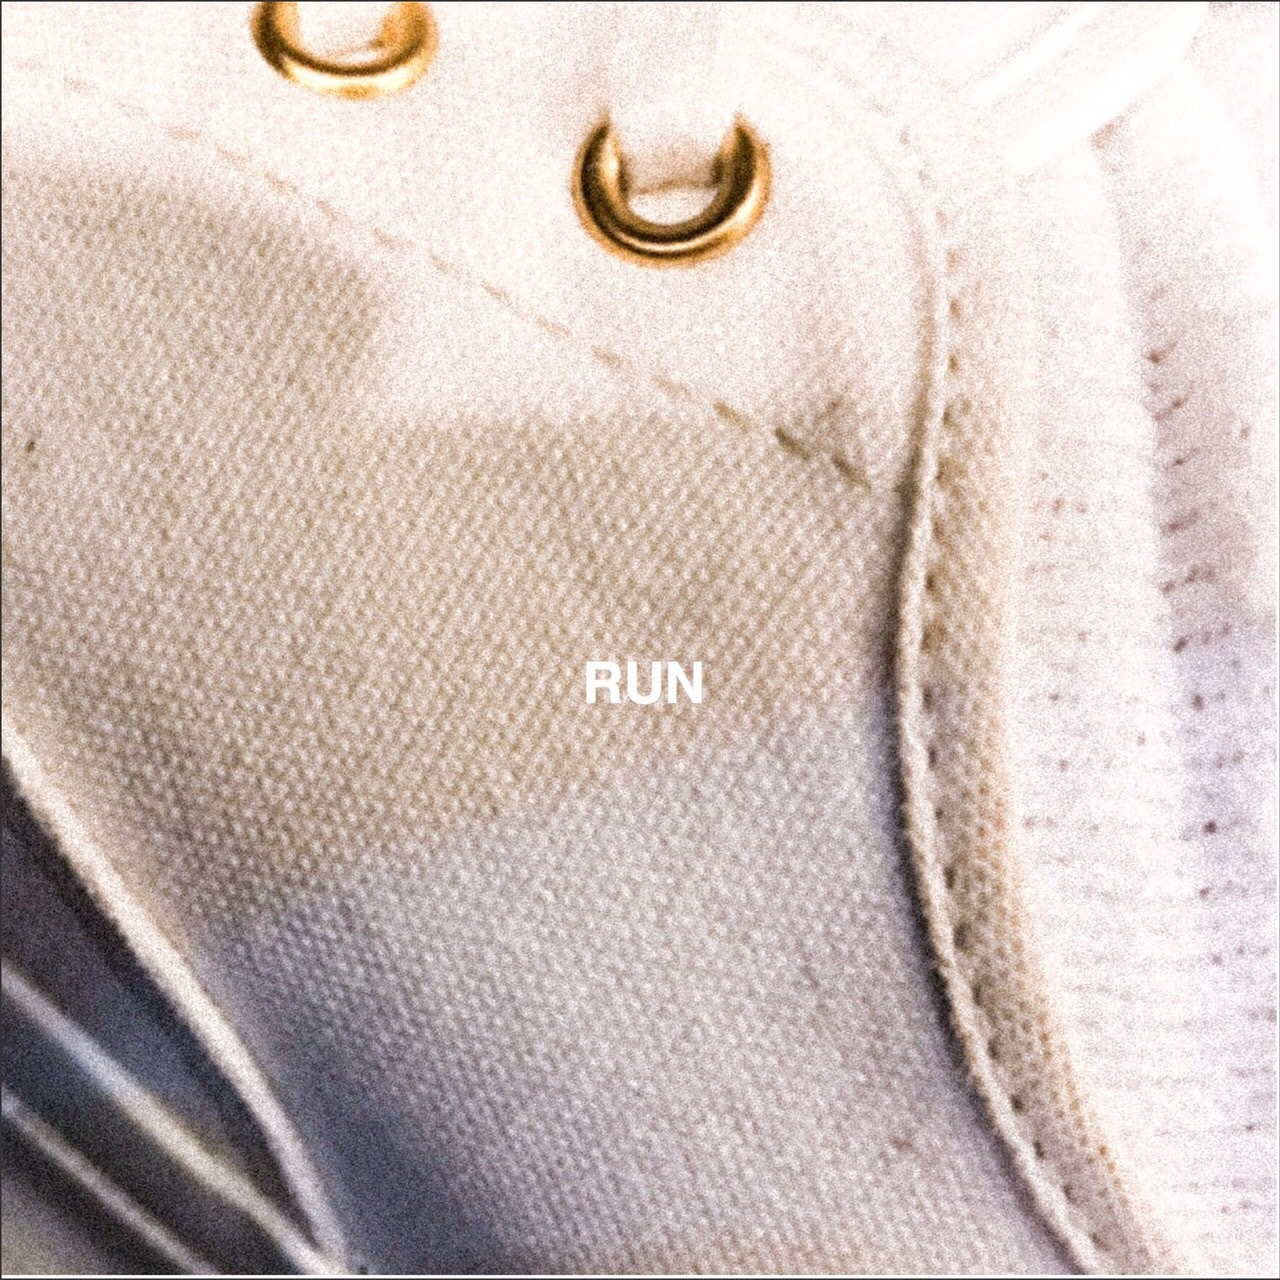 【sui sui duck】RUN